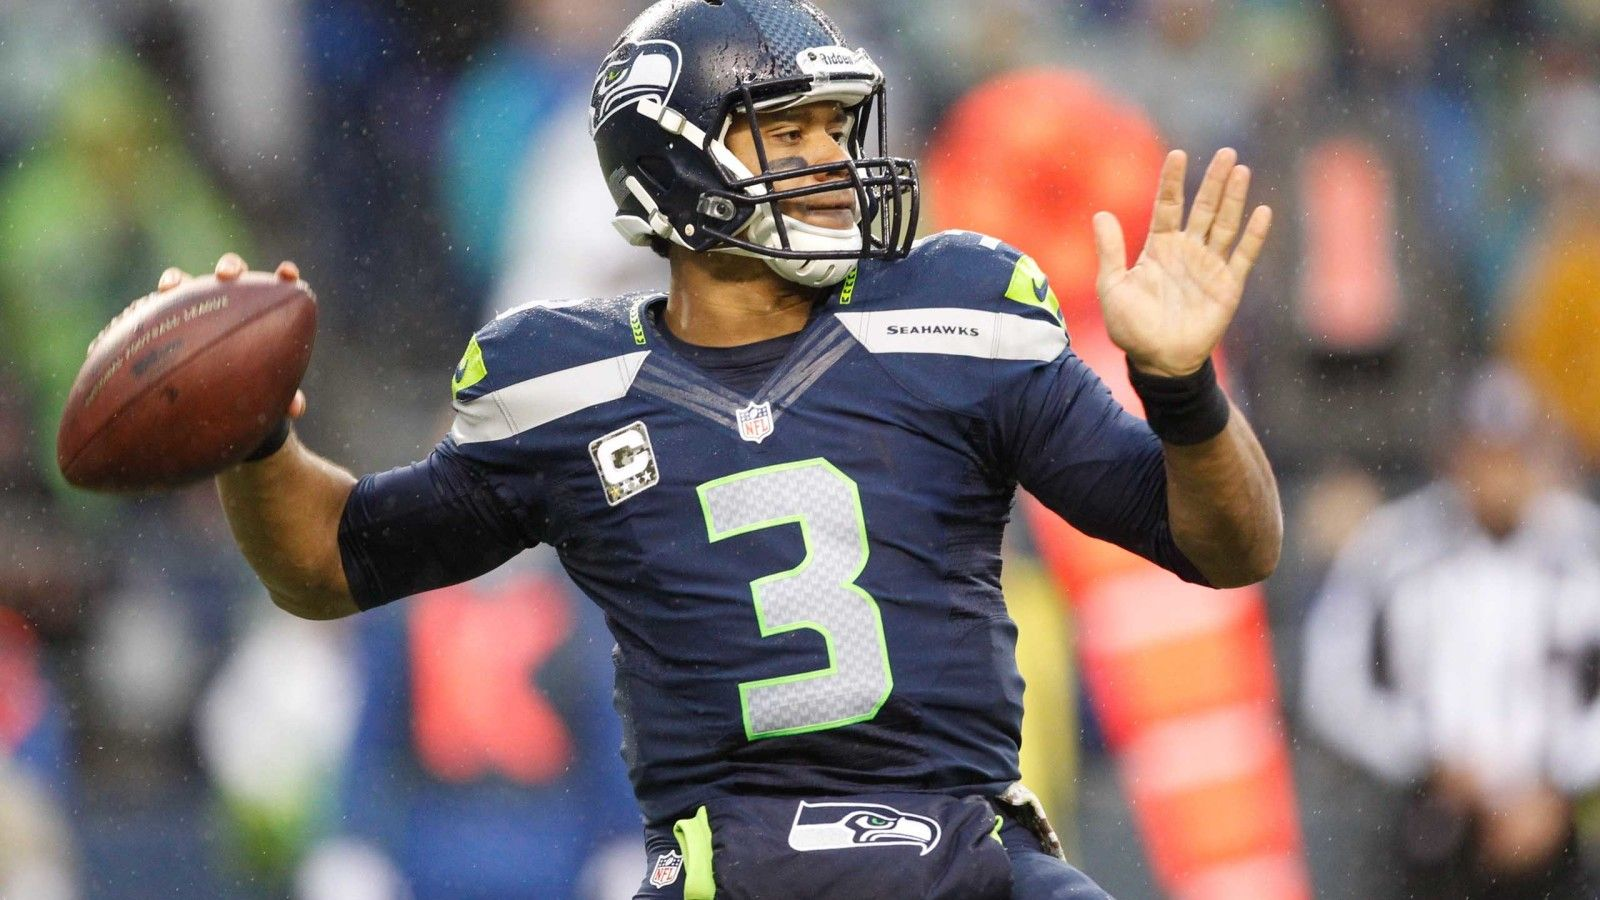 Russell Wilson Wallpapers Image HD Tumblr | Fantasy ...